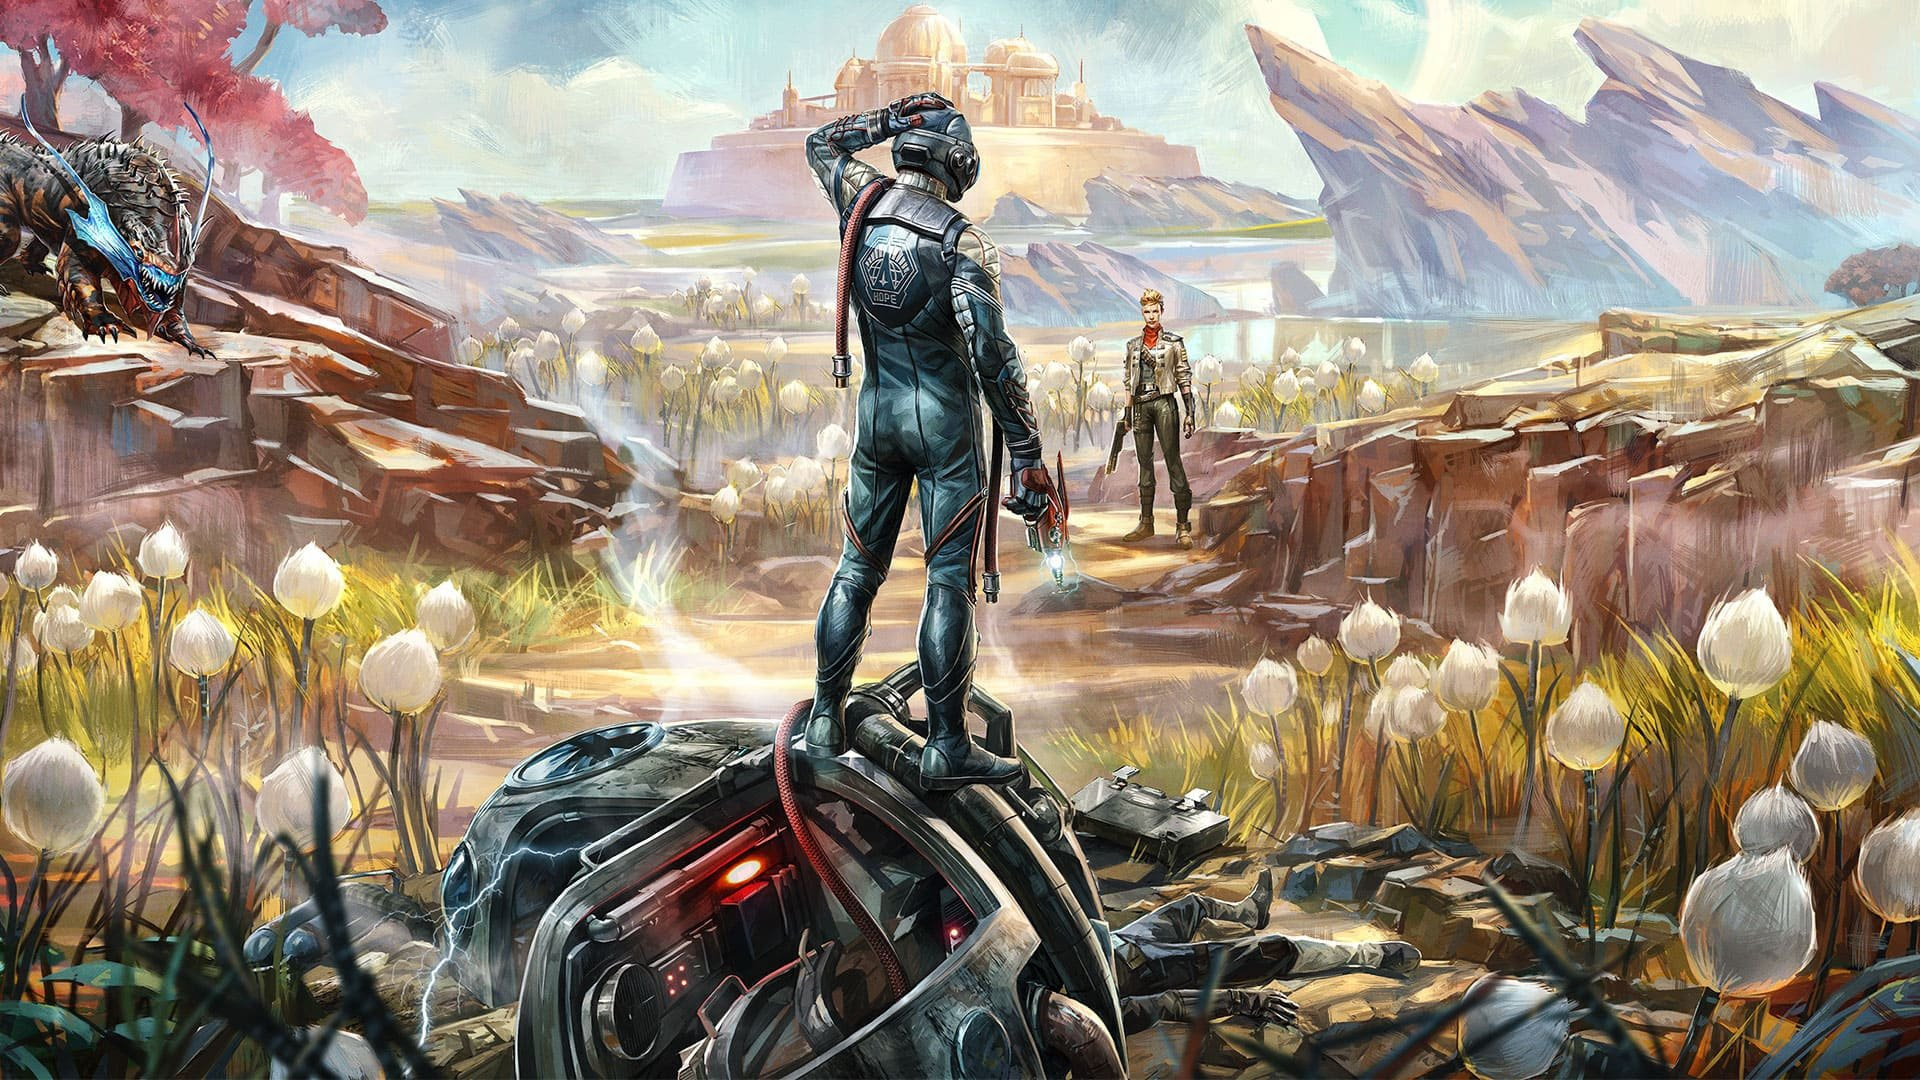 The Outer Worlds Is A Big Rpg Success With Two Million Copies